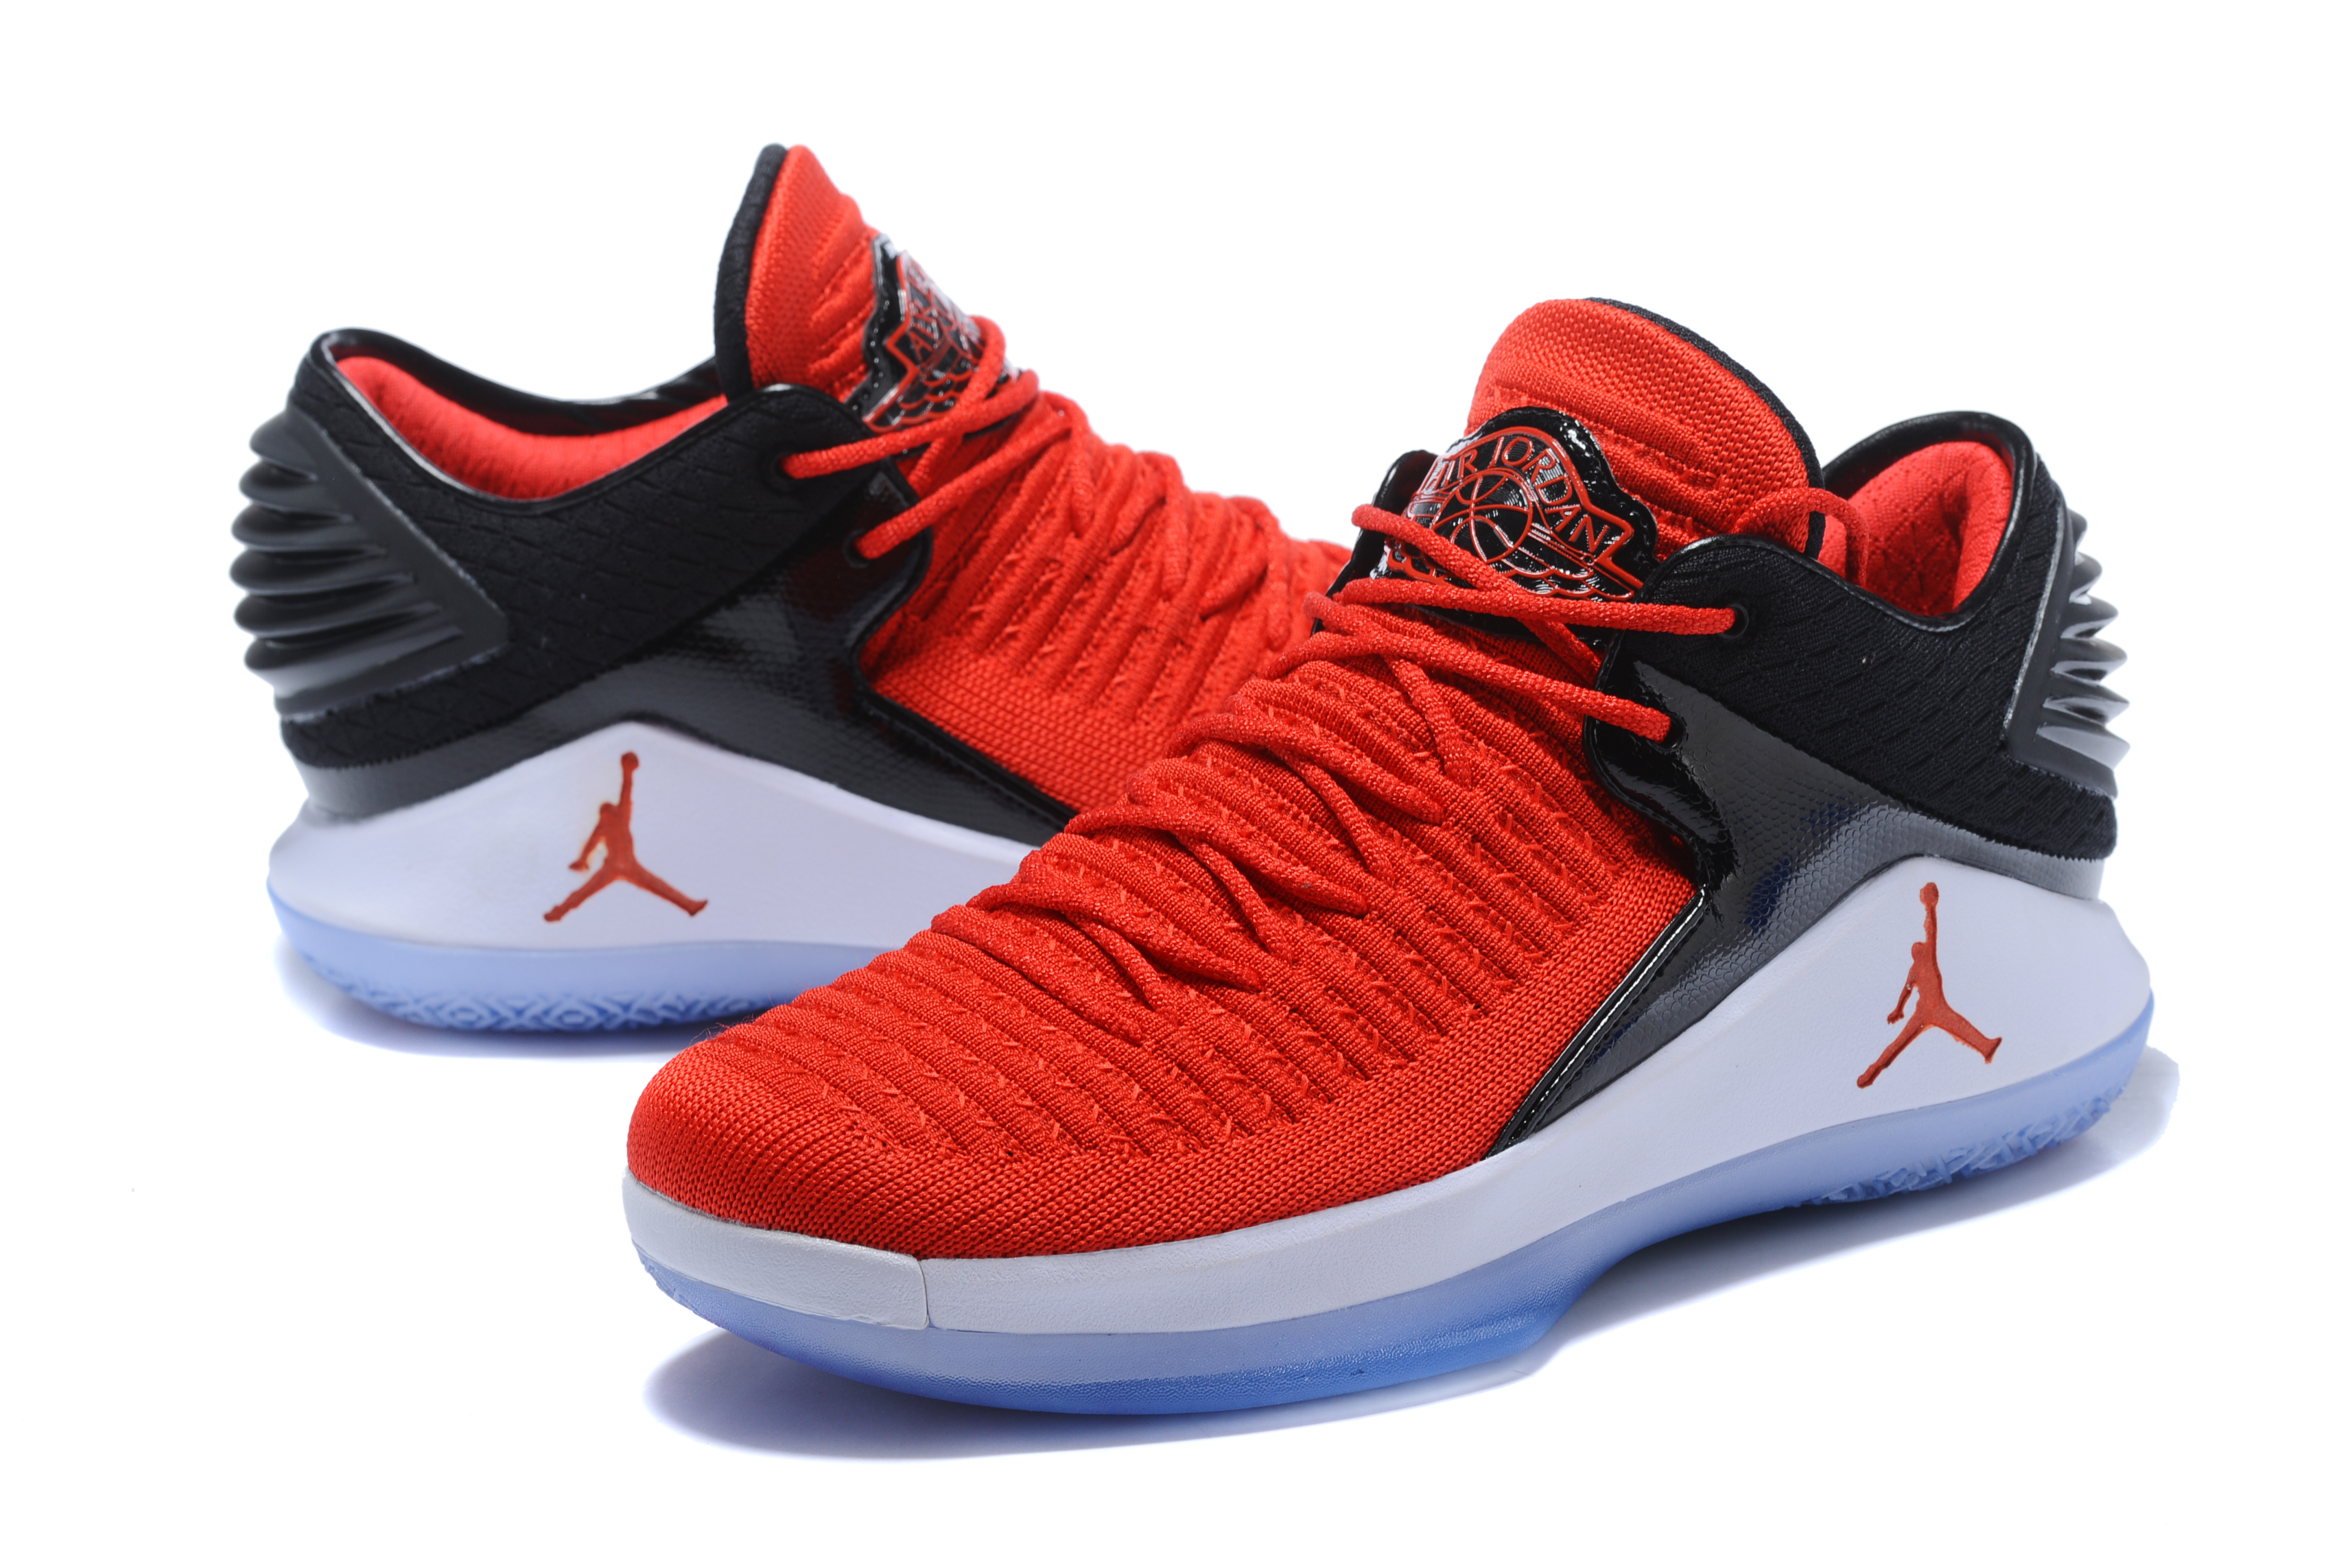 New Jordans 32 Universarity Red Shoes